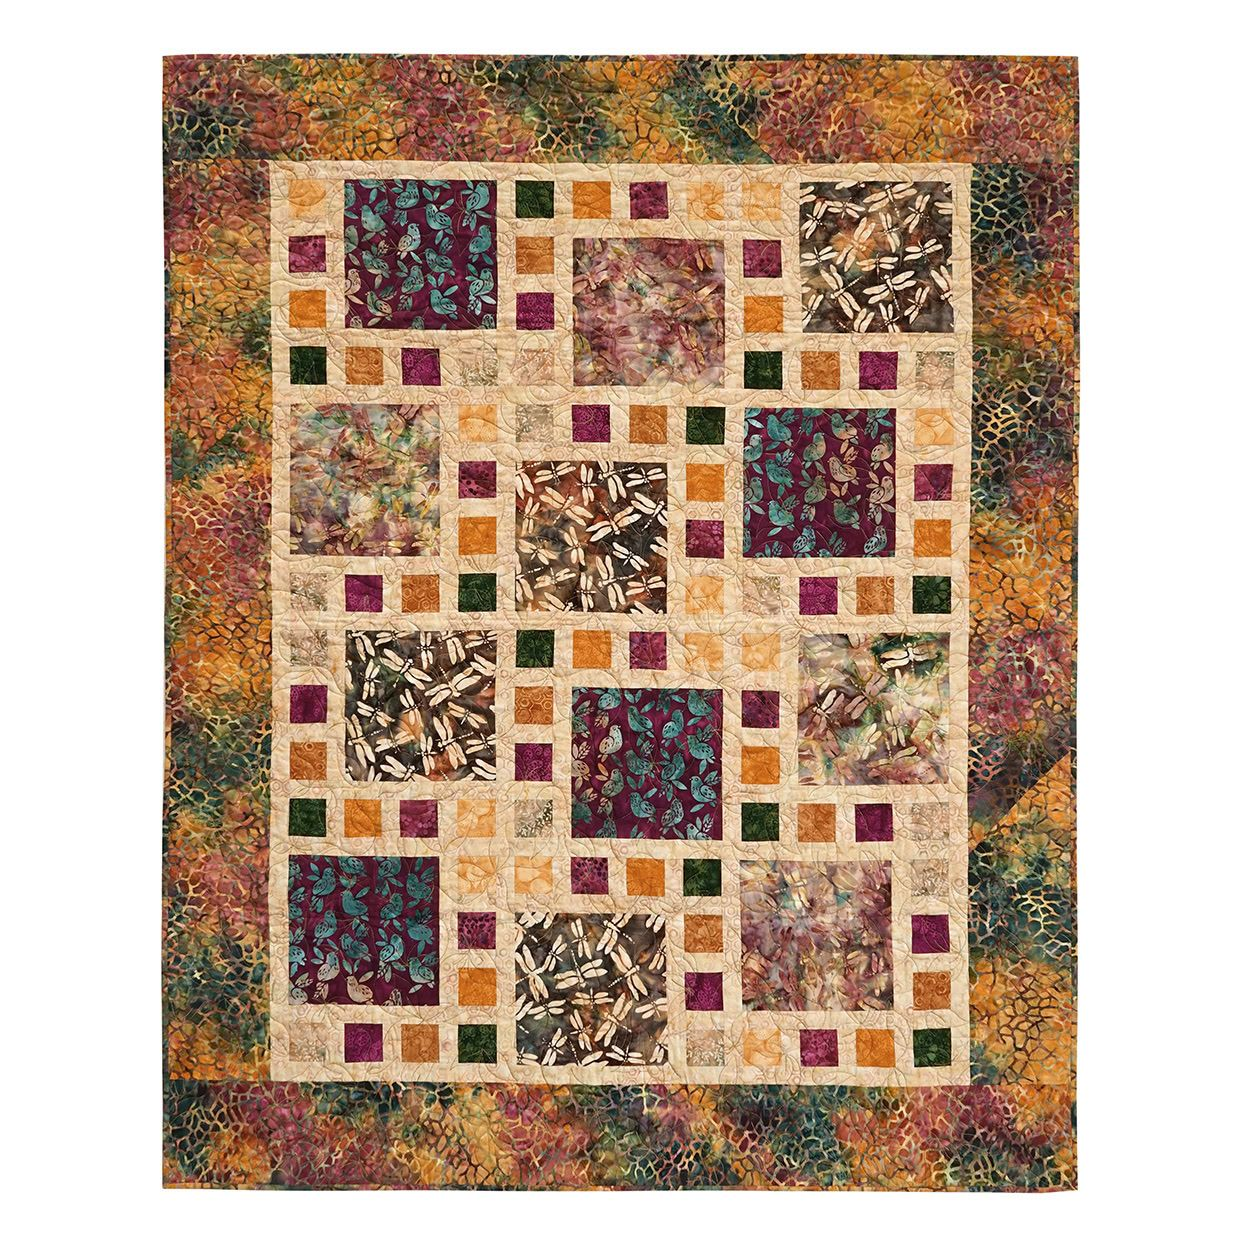 Arcadia Quilt Pattern By Mountainpeek Creations Quilts Quilt Patterns Quilt Kit